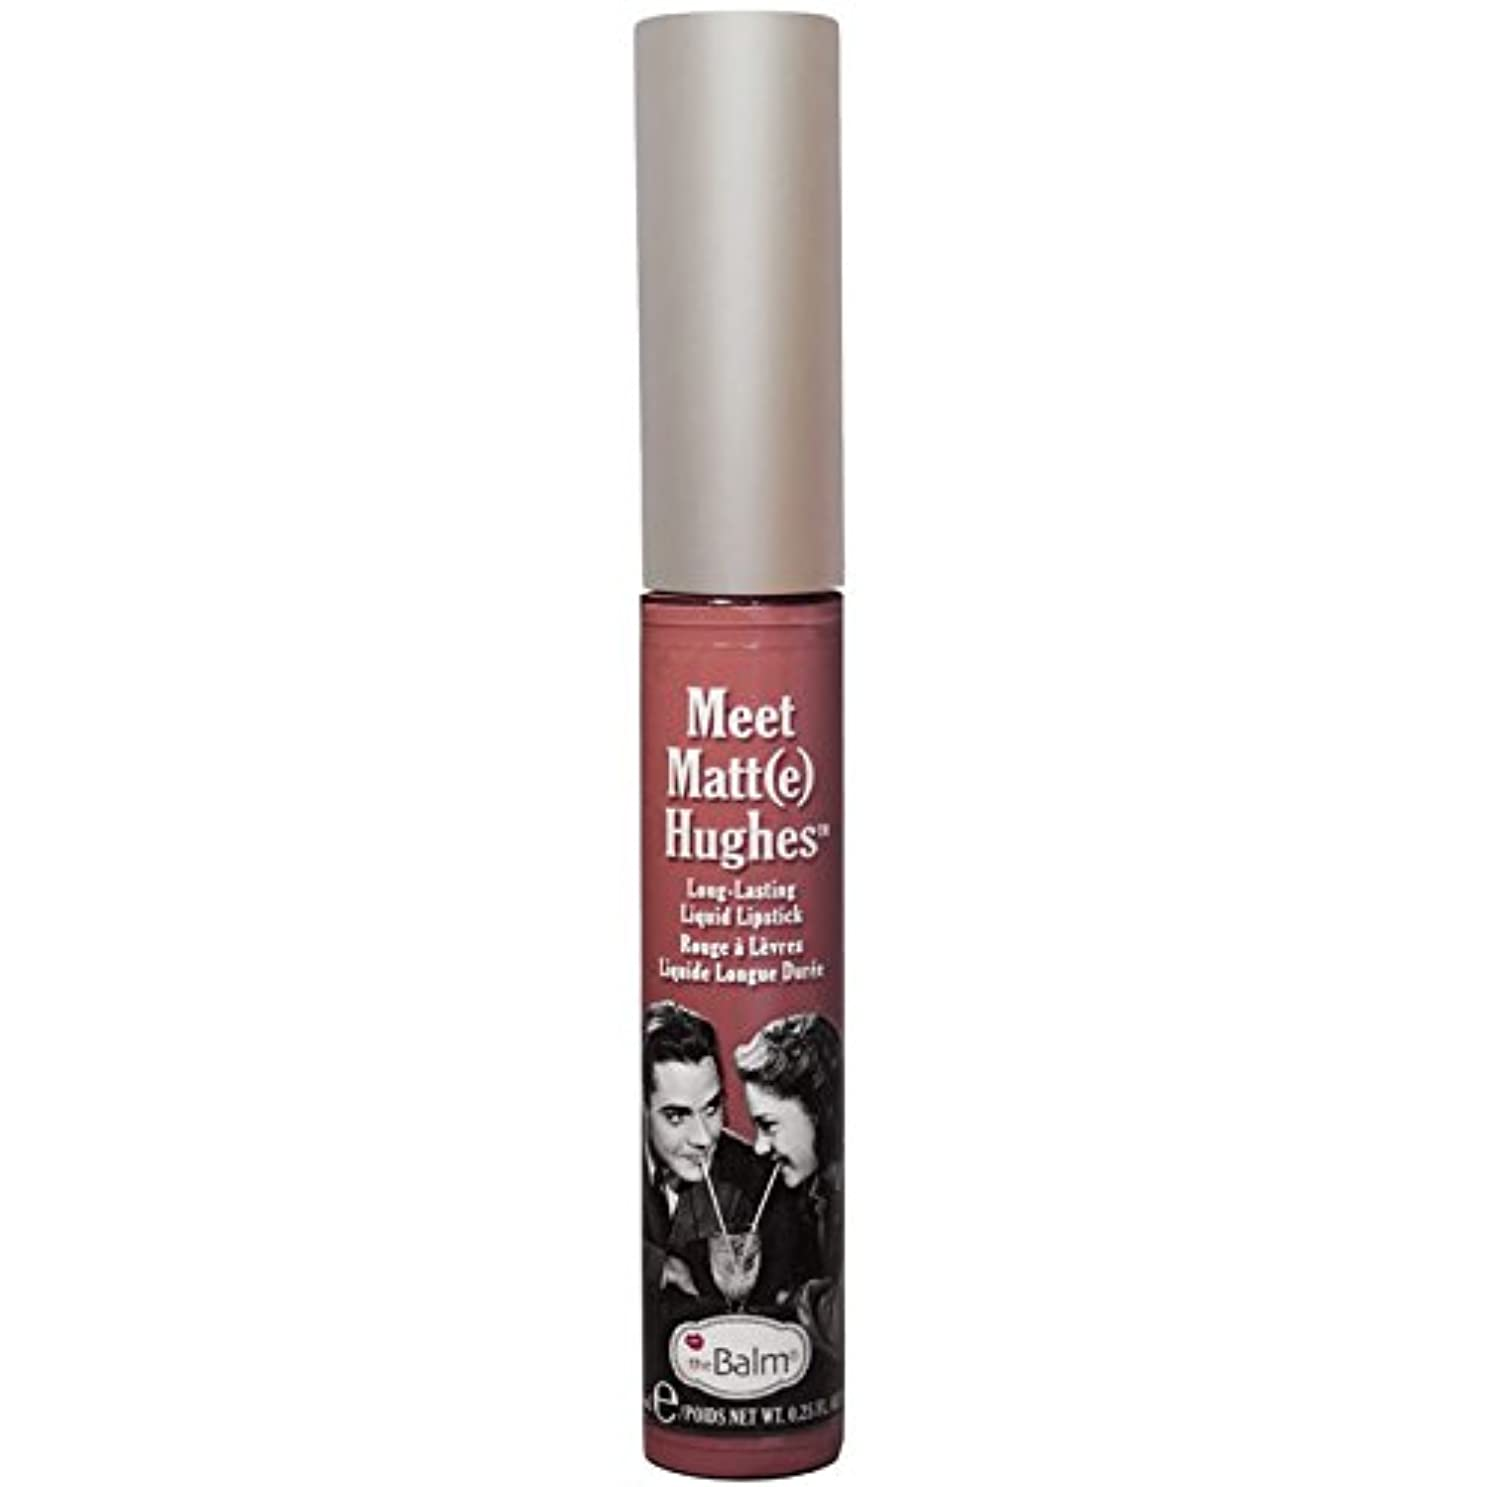 スリットリフト生まれtheBalm - Meet Matt(e) Hughes Long-Lasting Liquid Lipstick Sincere [並行輸入品]